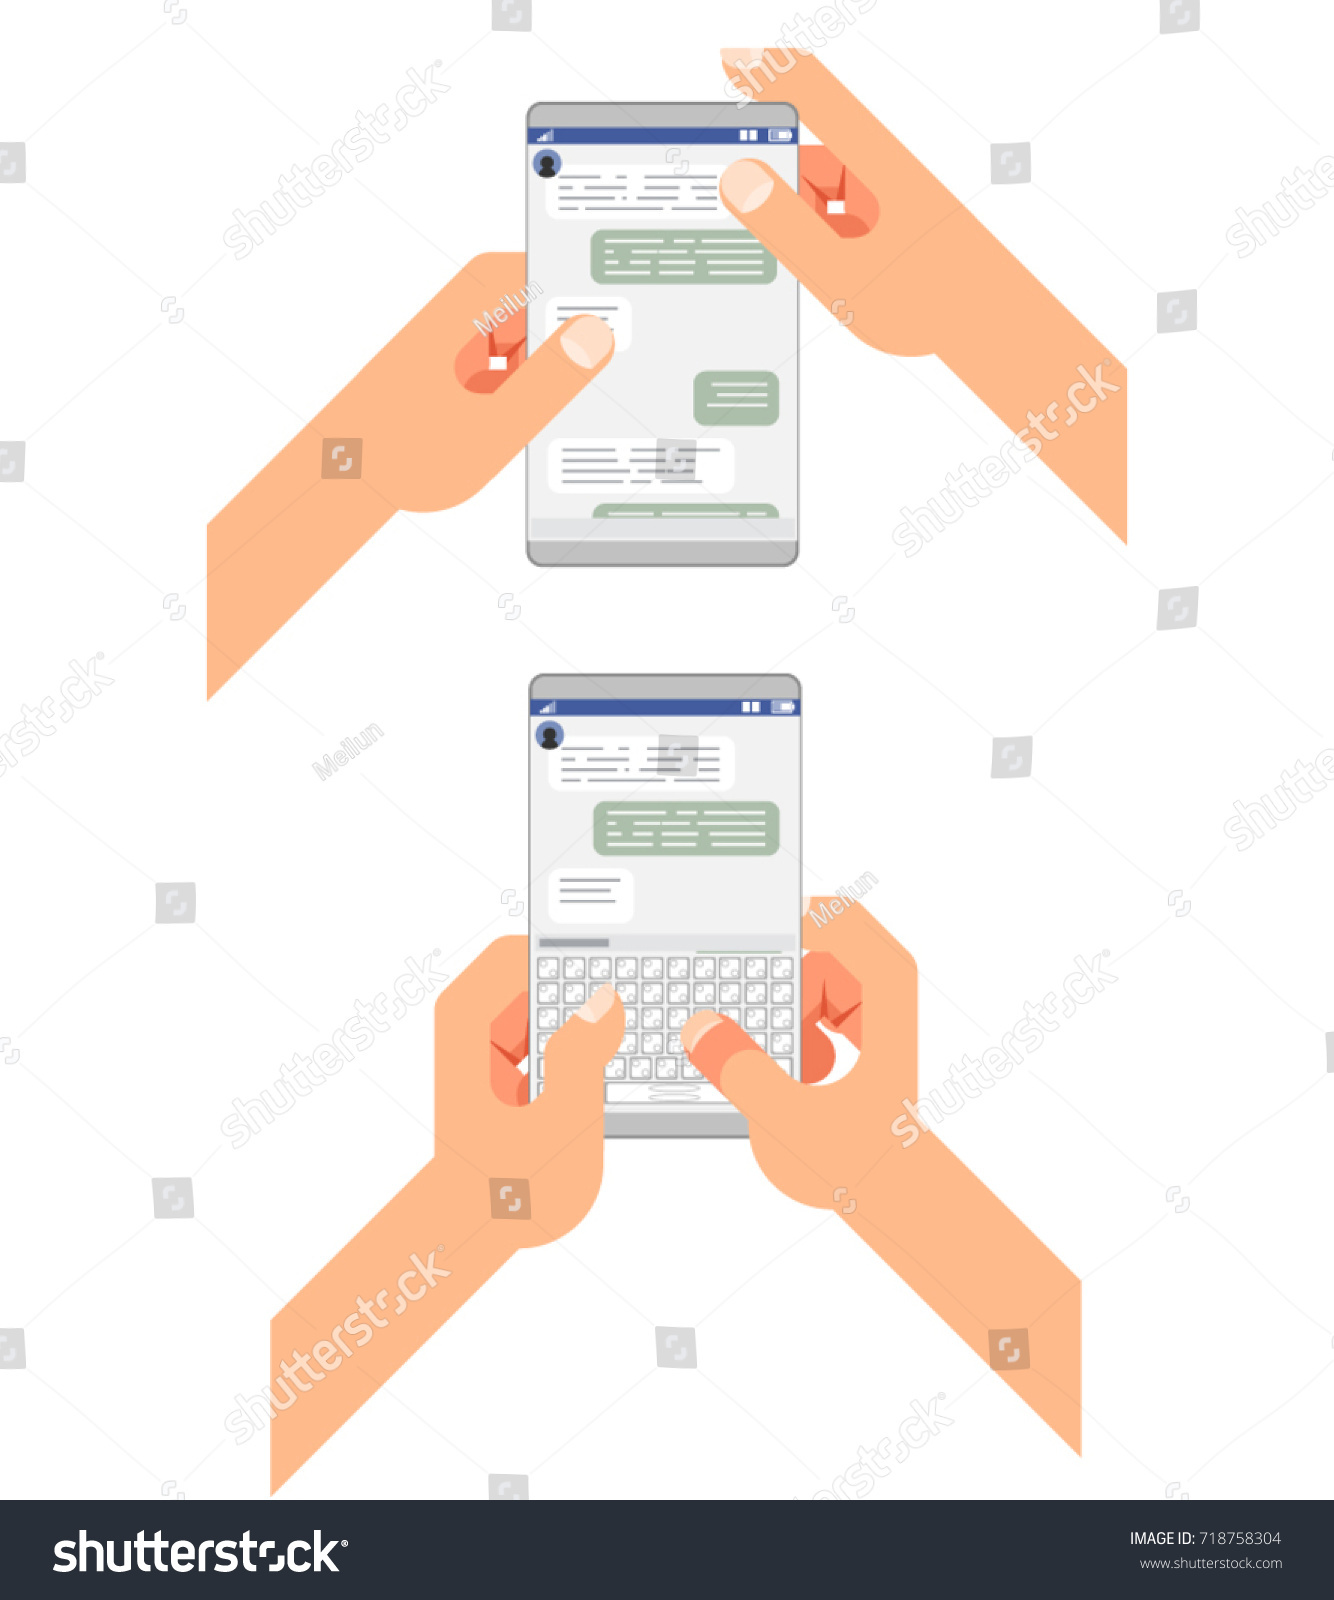 Chat Accept Reading Type Send Message Stock Vector Royalty Free How To Read Cellphones Schematic Diagrams Social Messenger Window Chatting Messaging Mobile Phone Hands Concept Design